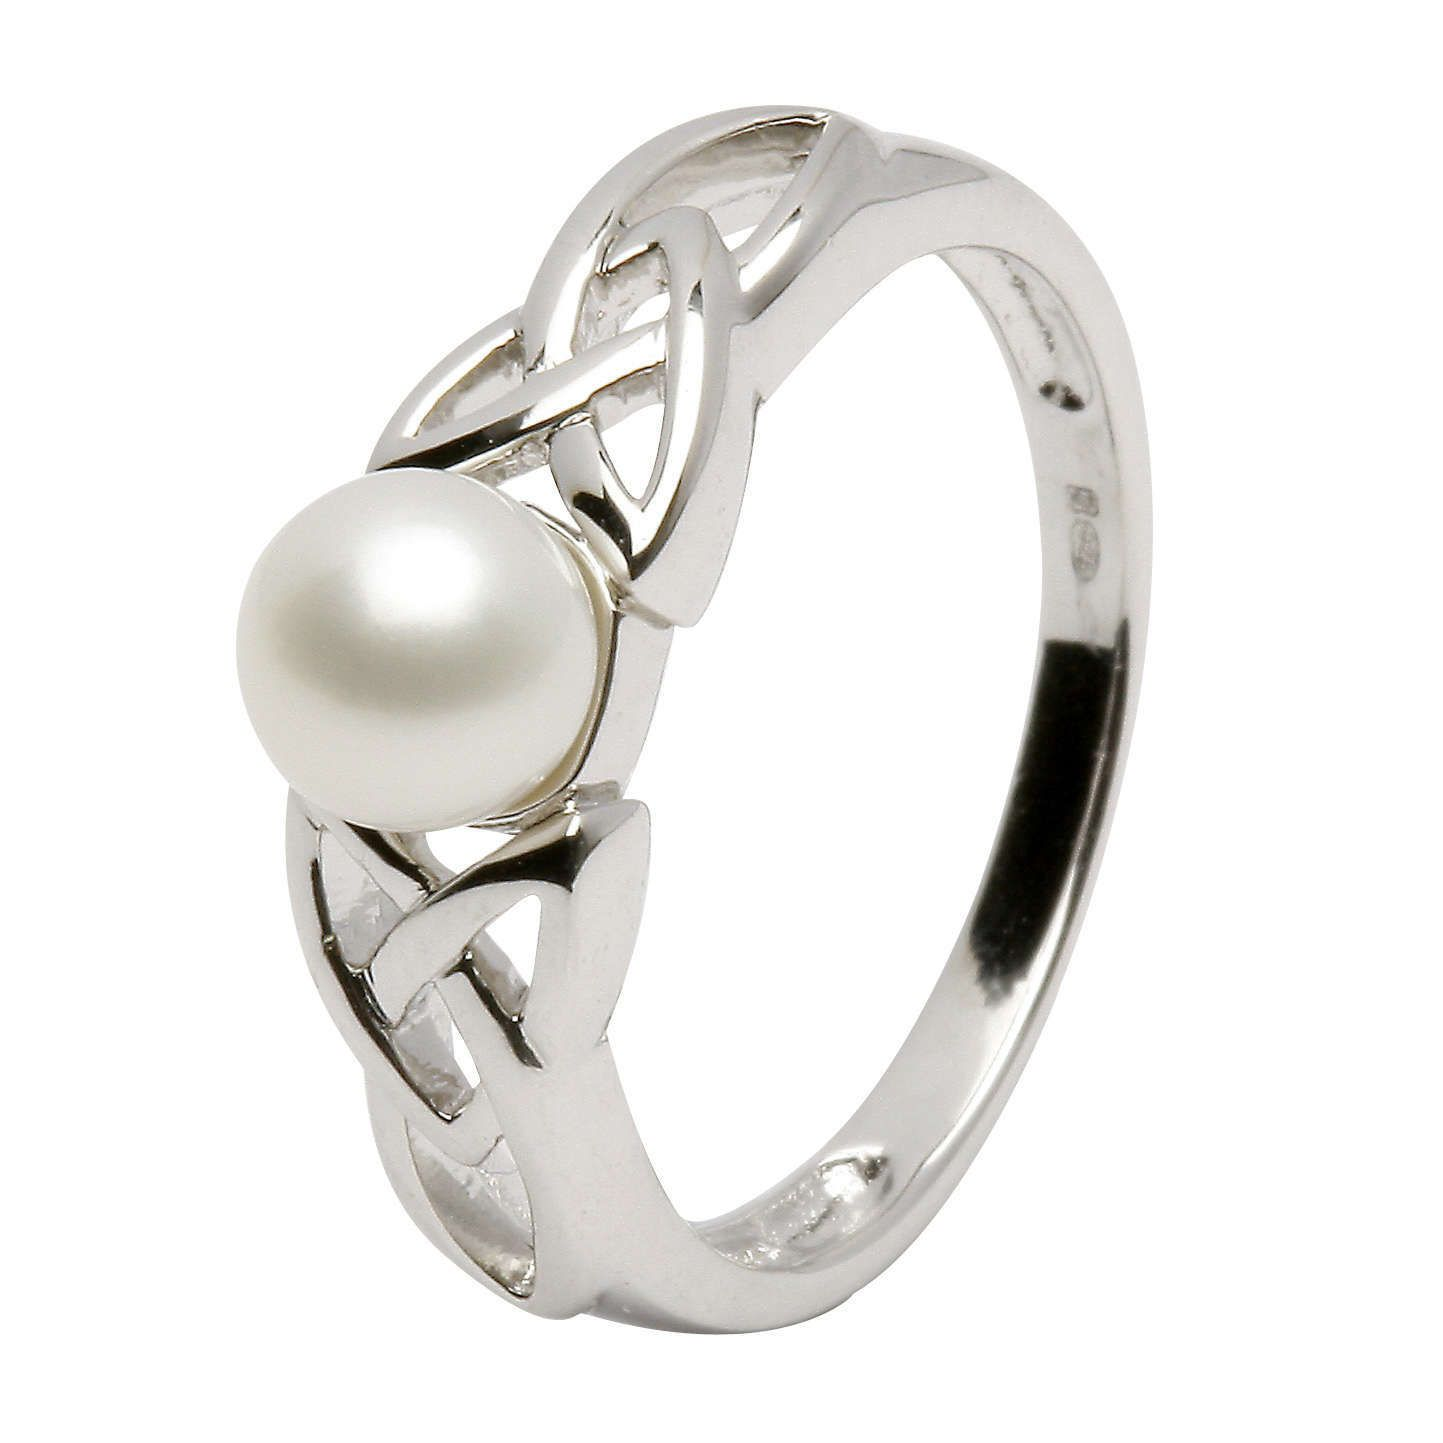 Affordable Wedding Rings 1080p Hd Pictures Is The Best Quality Image With Hd Resolution This Wedding 1080p Hd Pictures Has Viewed By T Celtic Bagpipe Guinness